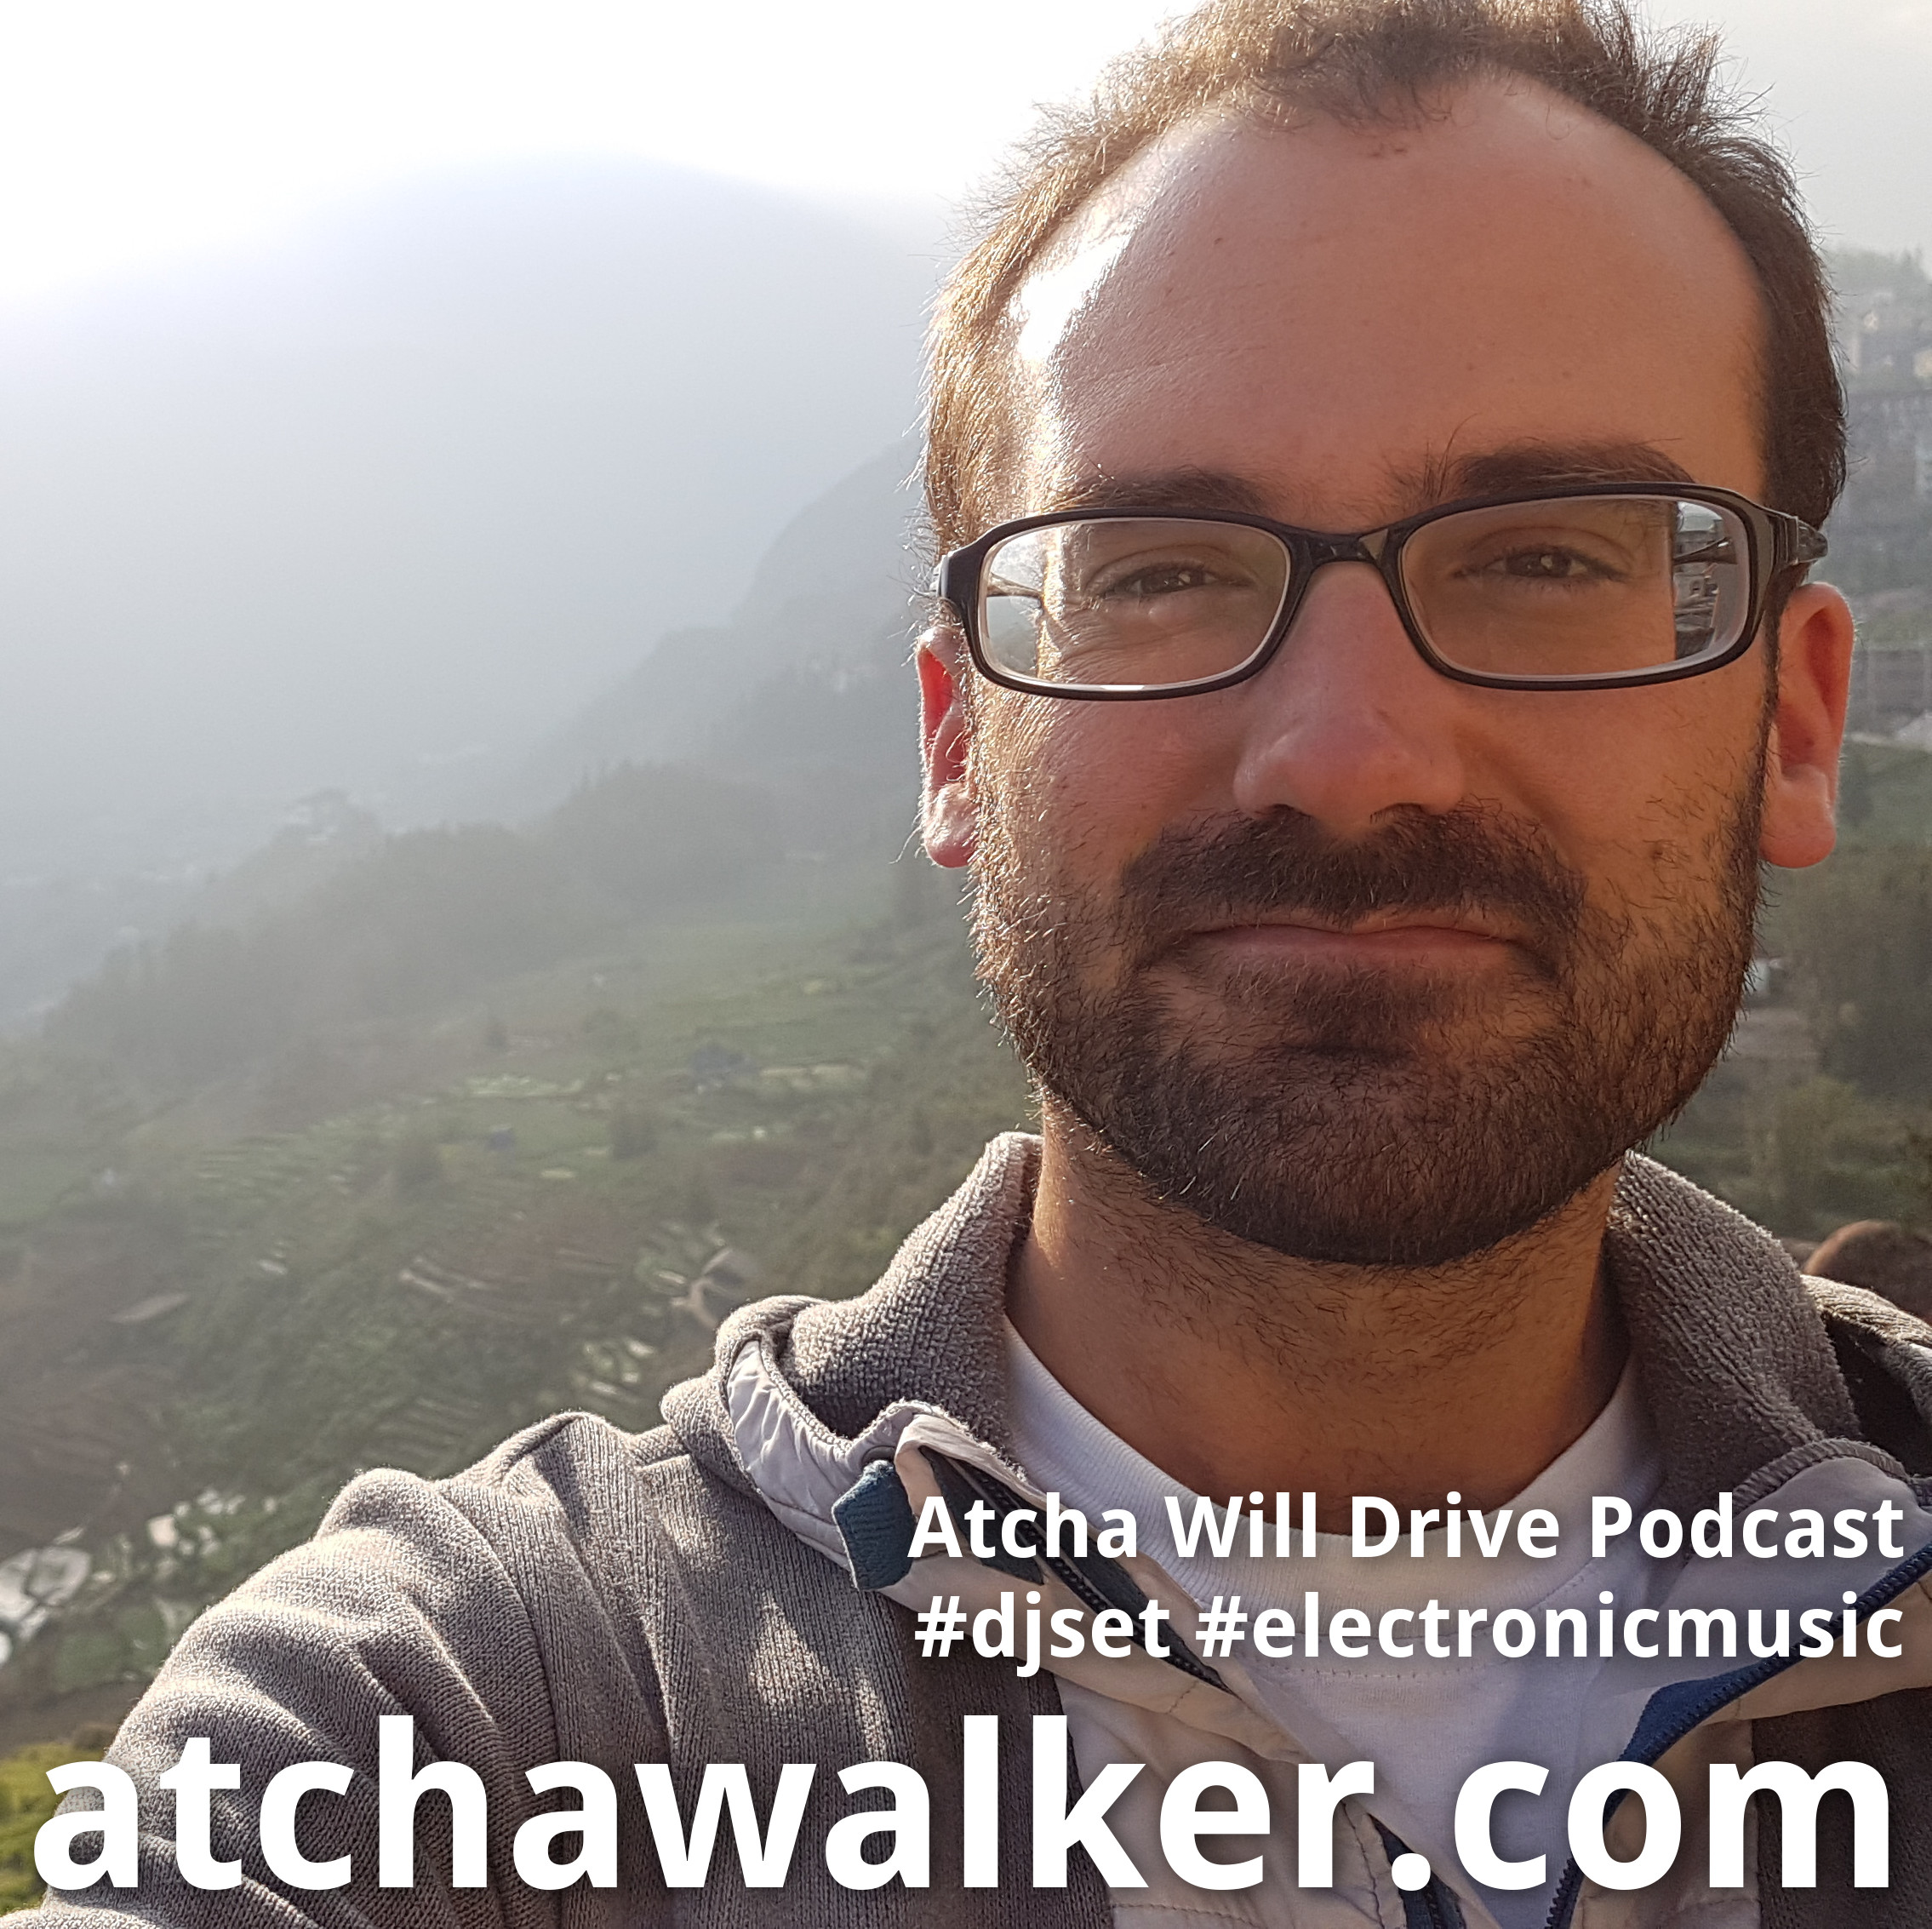 Atcha Will Drive Podcast